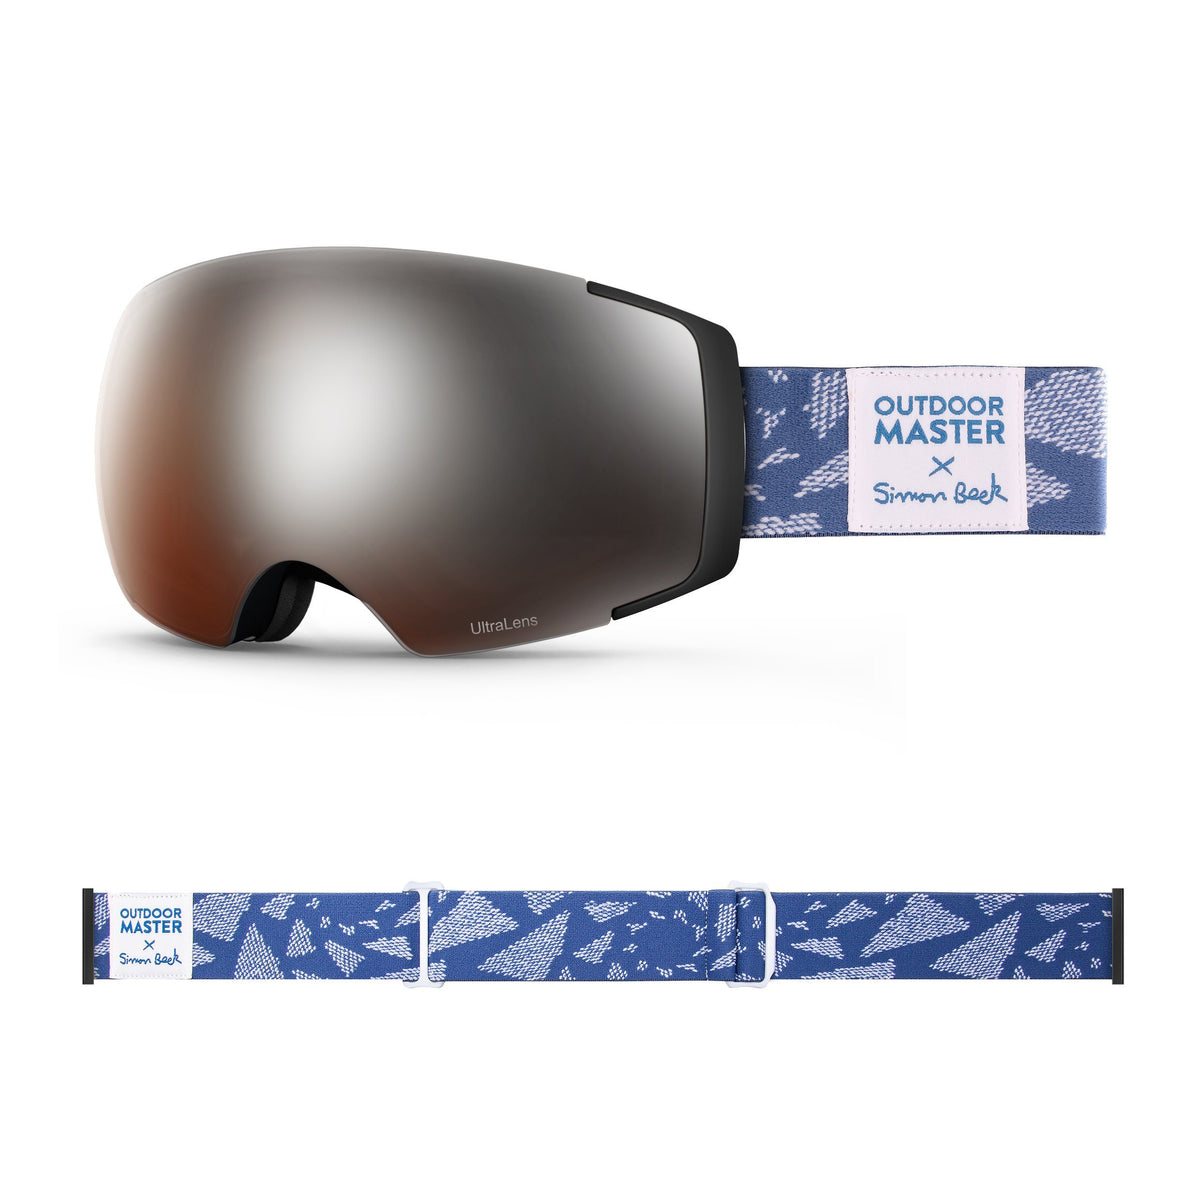 OutdoorMaster x Simon Beck Ski Goggles Pro Series - Snowshoeing Art Limited Edition OutdoorMaster LutraLens VLT 13% Optimized Orange with REVO Silver Flying Triangles